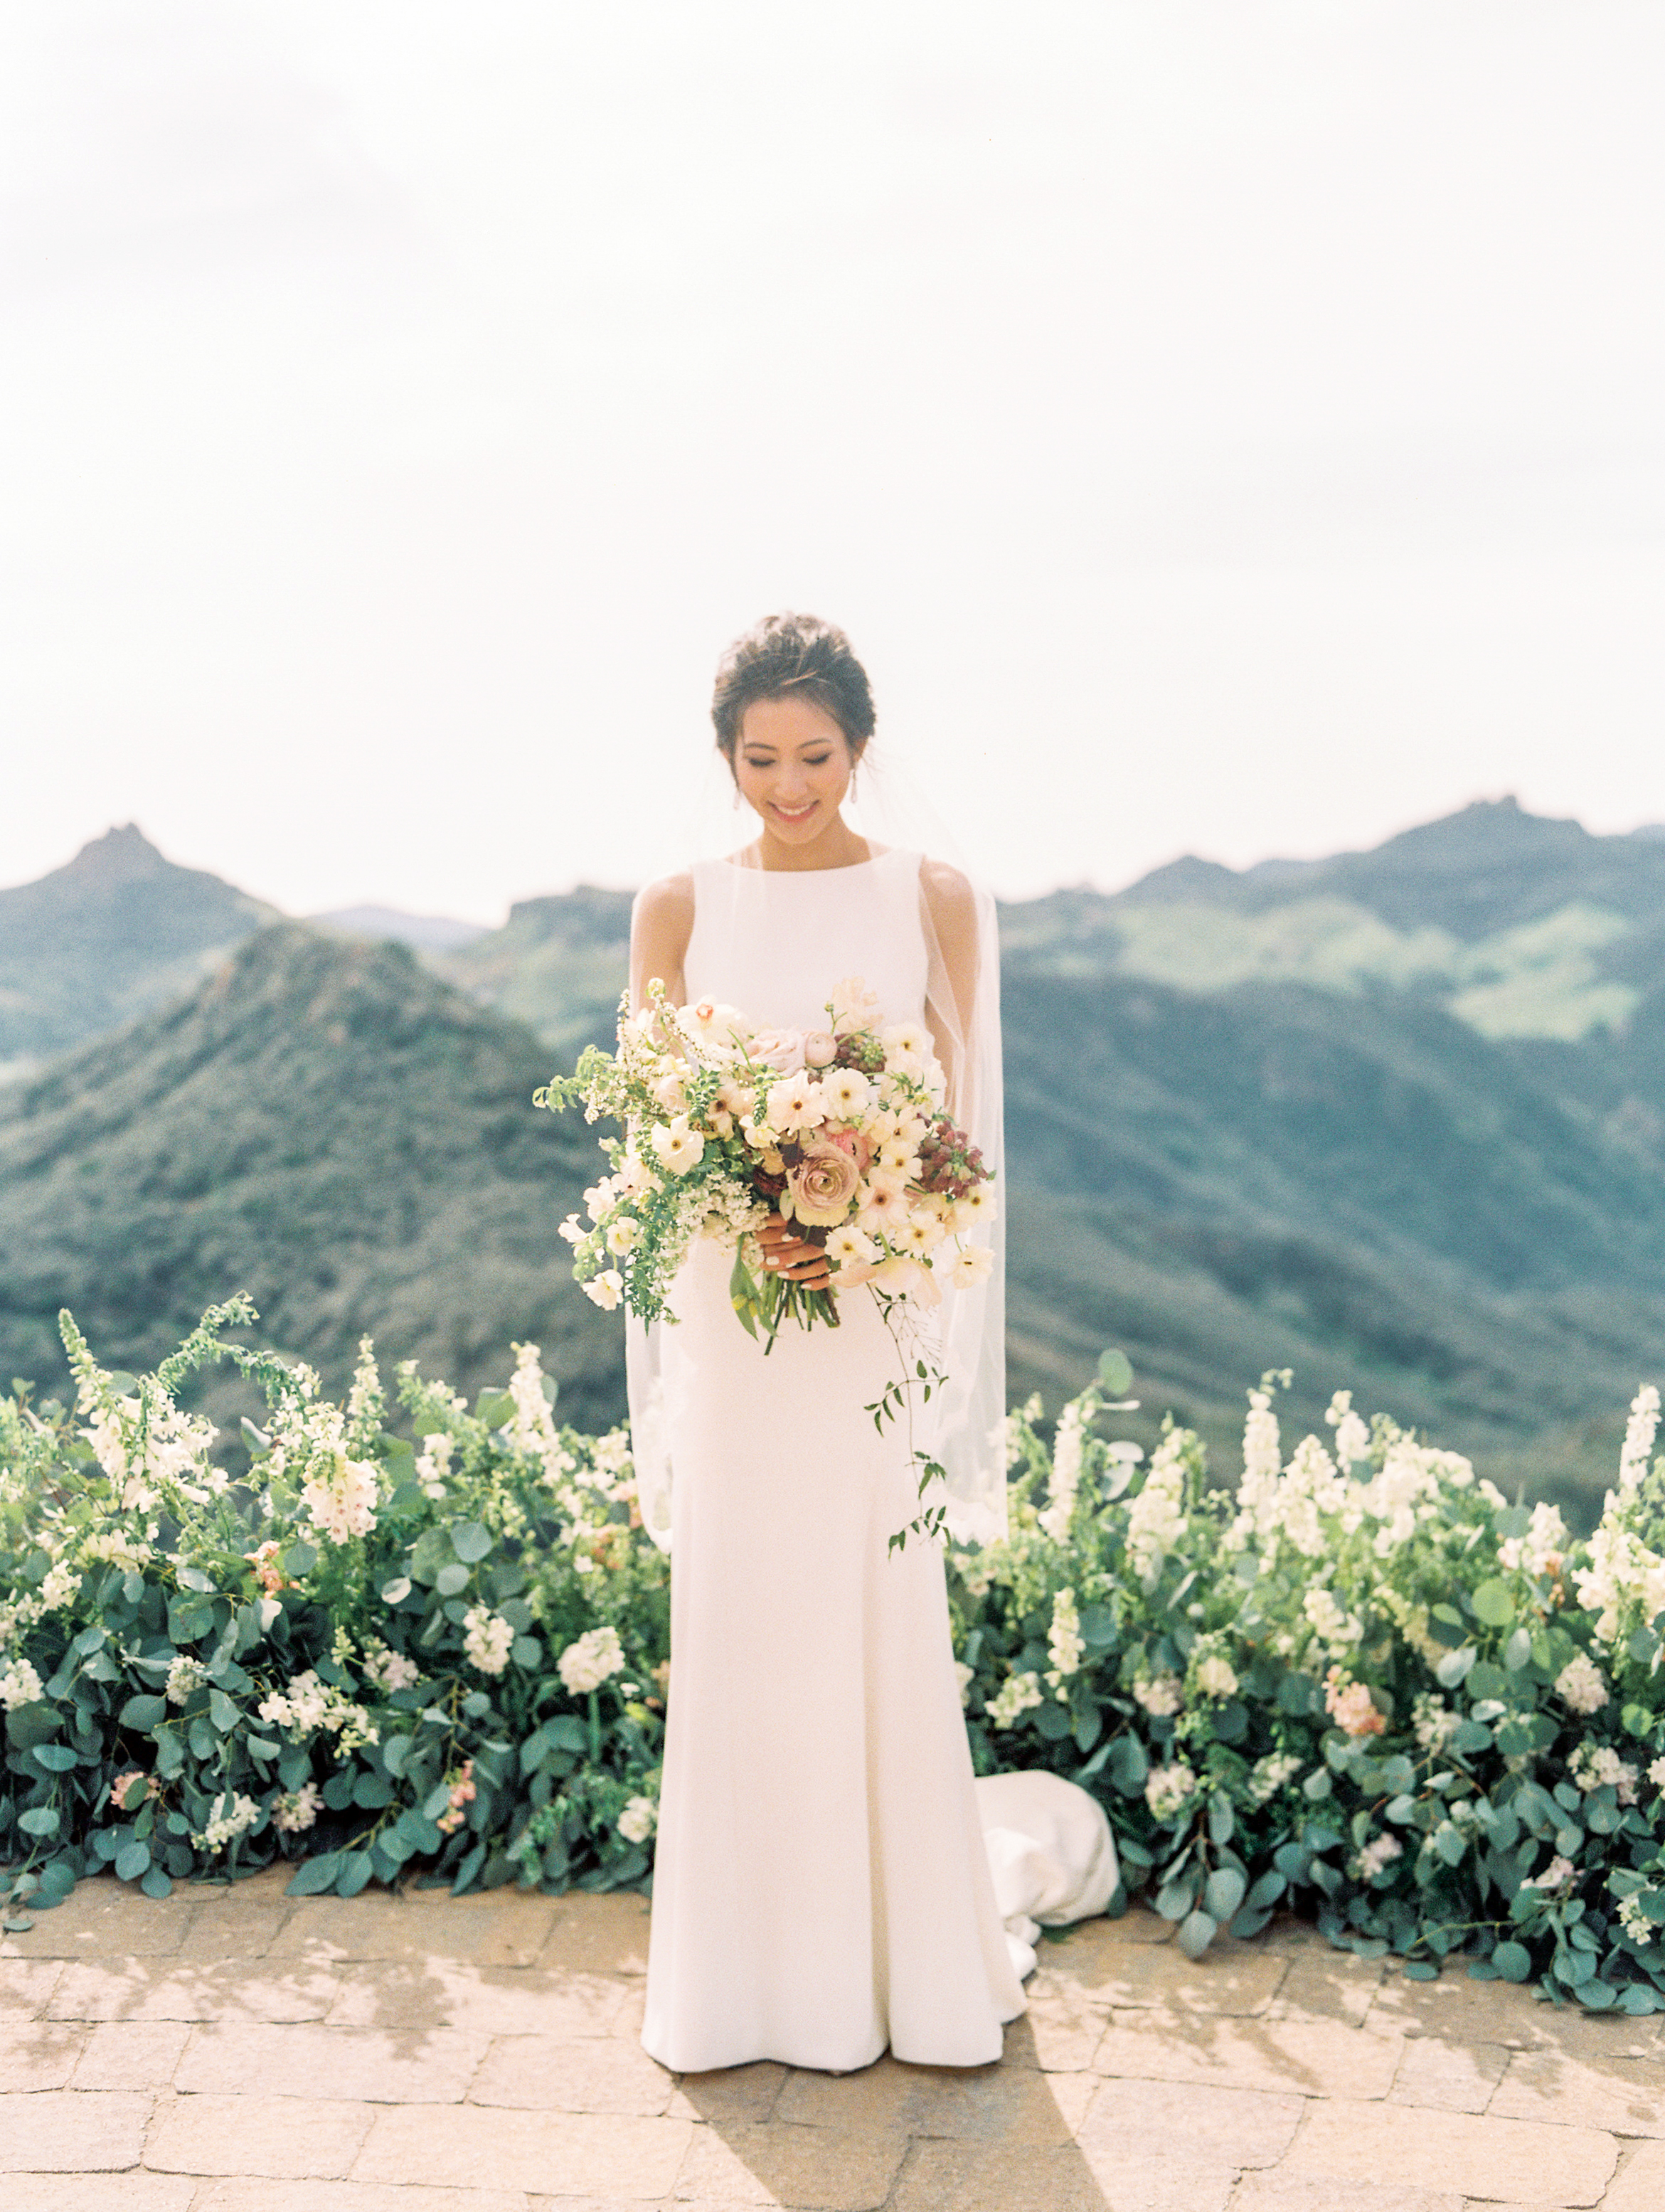 Spring Wedding at Romantic Hilltop Vineyard Malibu Rocky Oaks Sally Pinera Finding Flora Bridal Bouquet Ceremony Circle Install So Happi Together